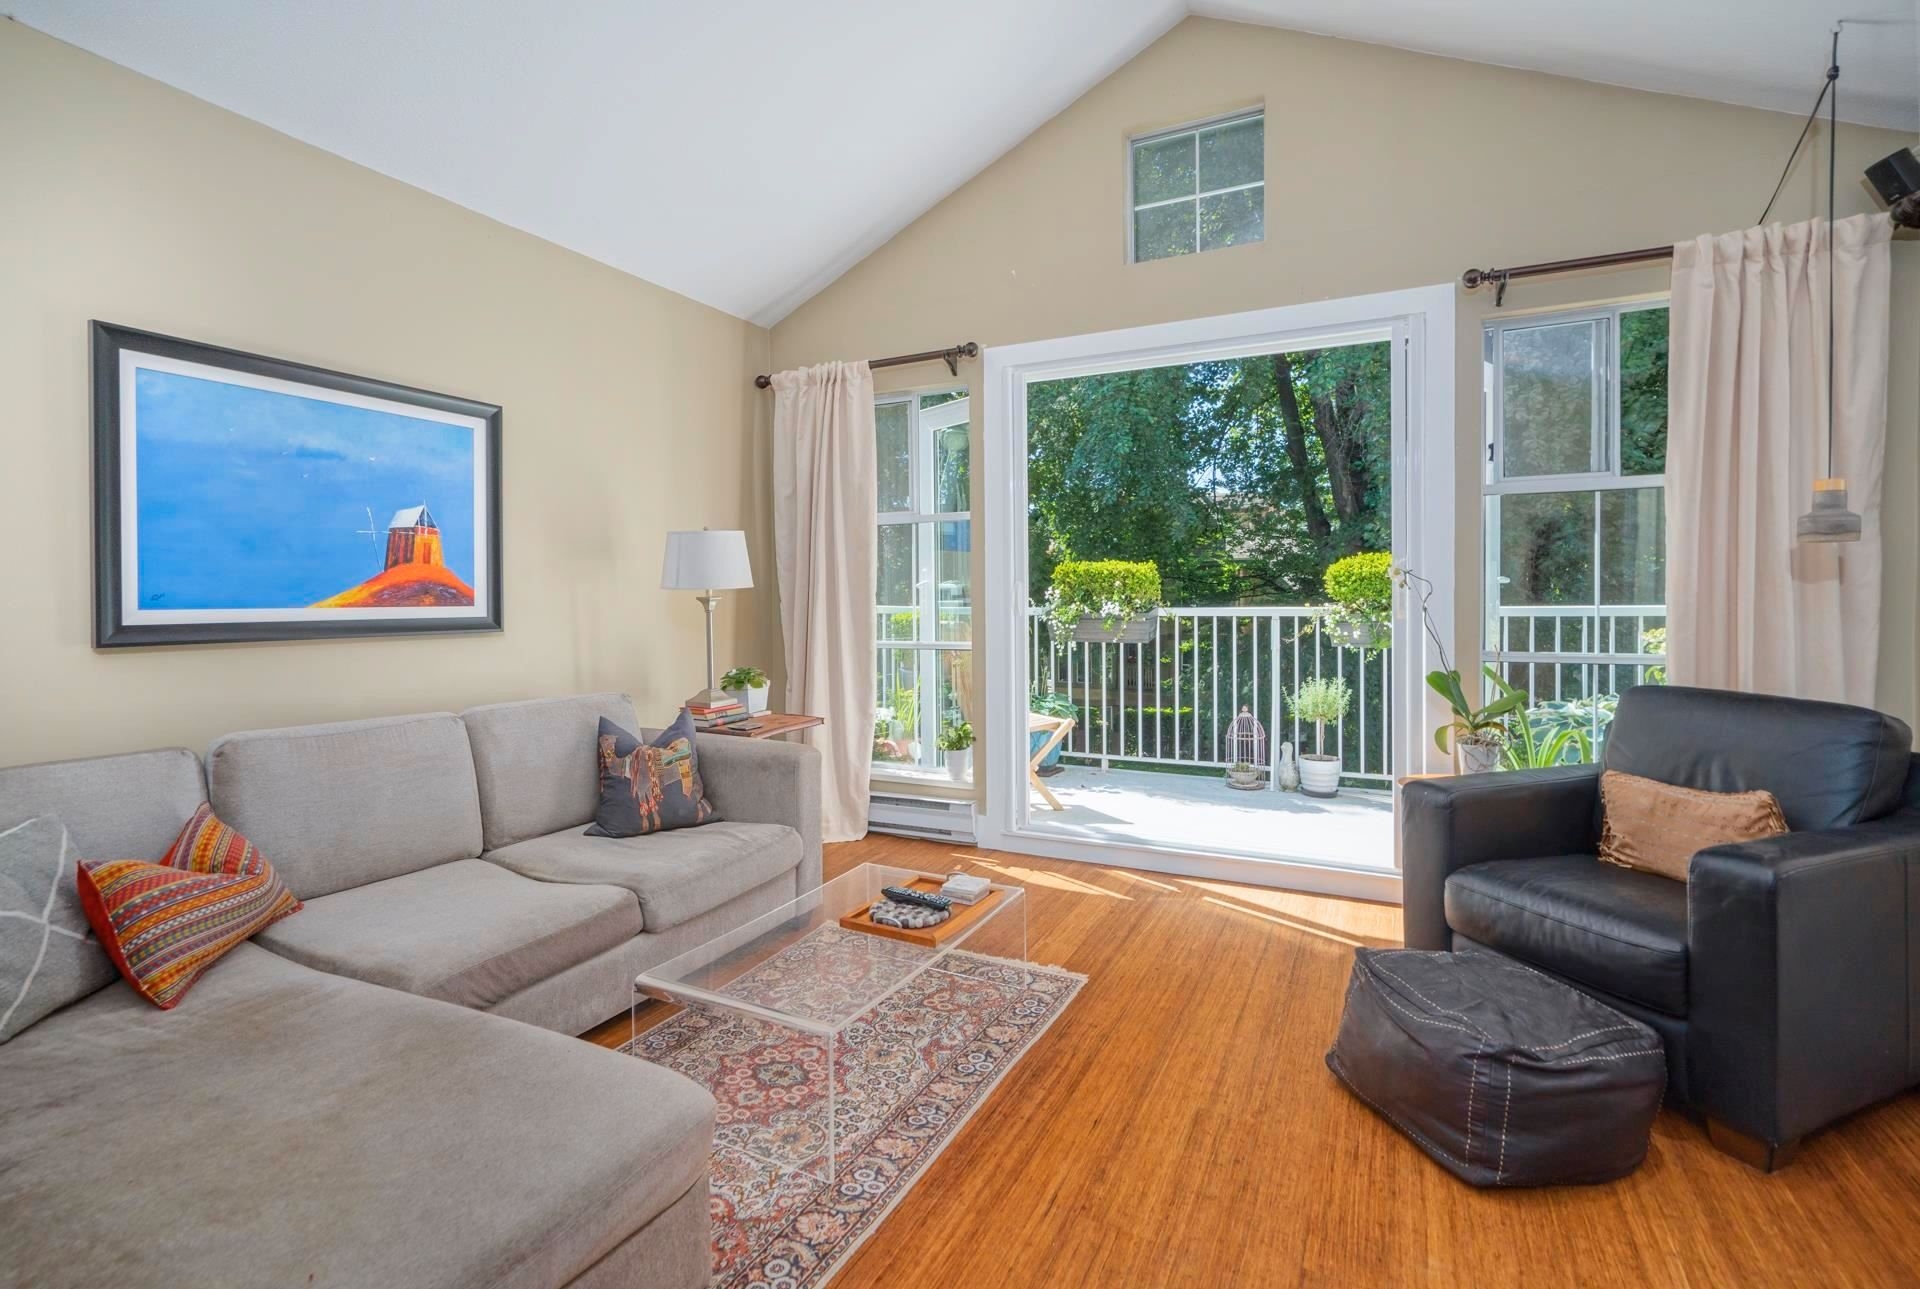 """Main Photo: 301 655 W 13TH Avenue in Vancouver: Fairview VW Condo for sale in """"Tiffany Mansion"""" (Vancouver West)  : MLS®# R2598005"""